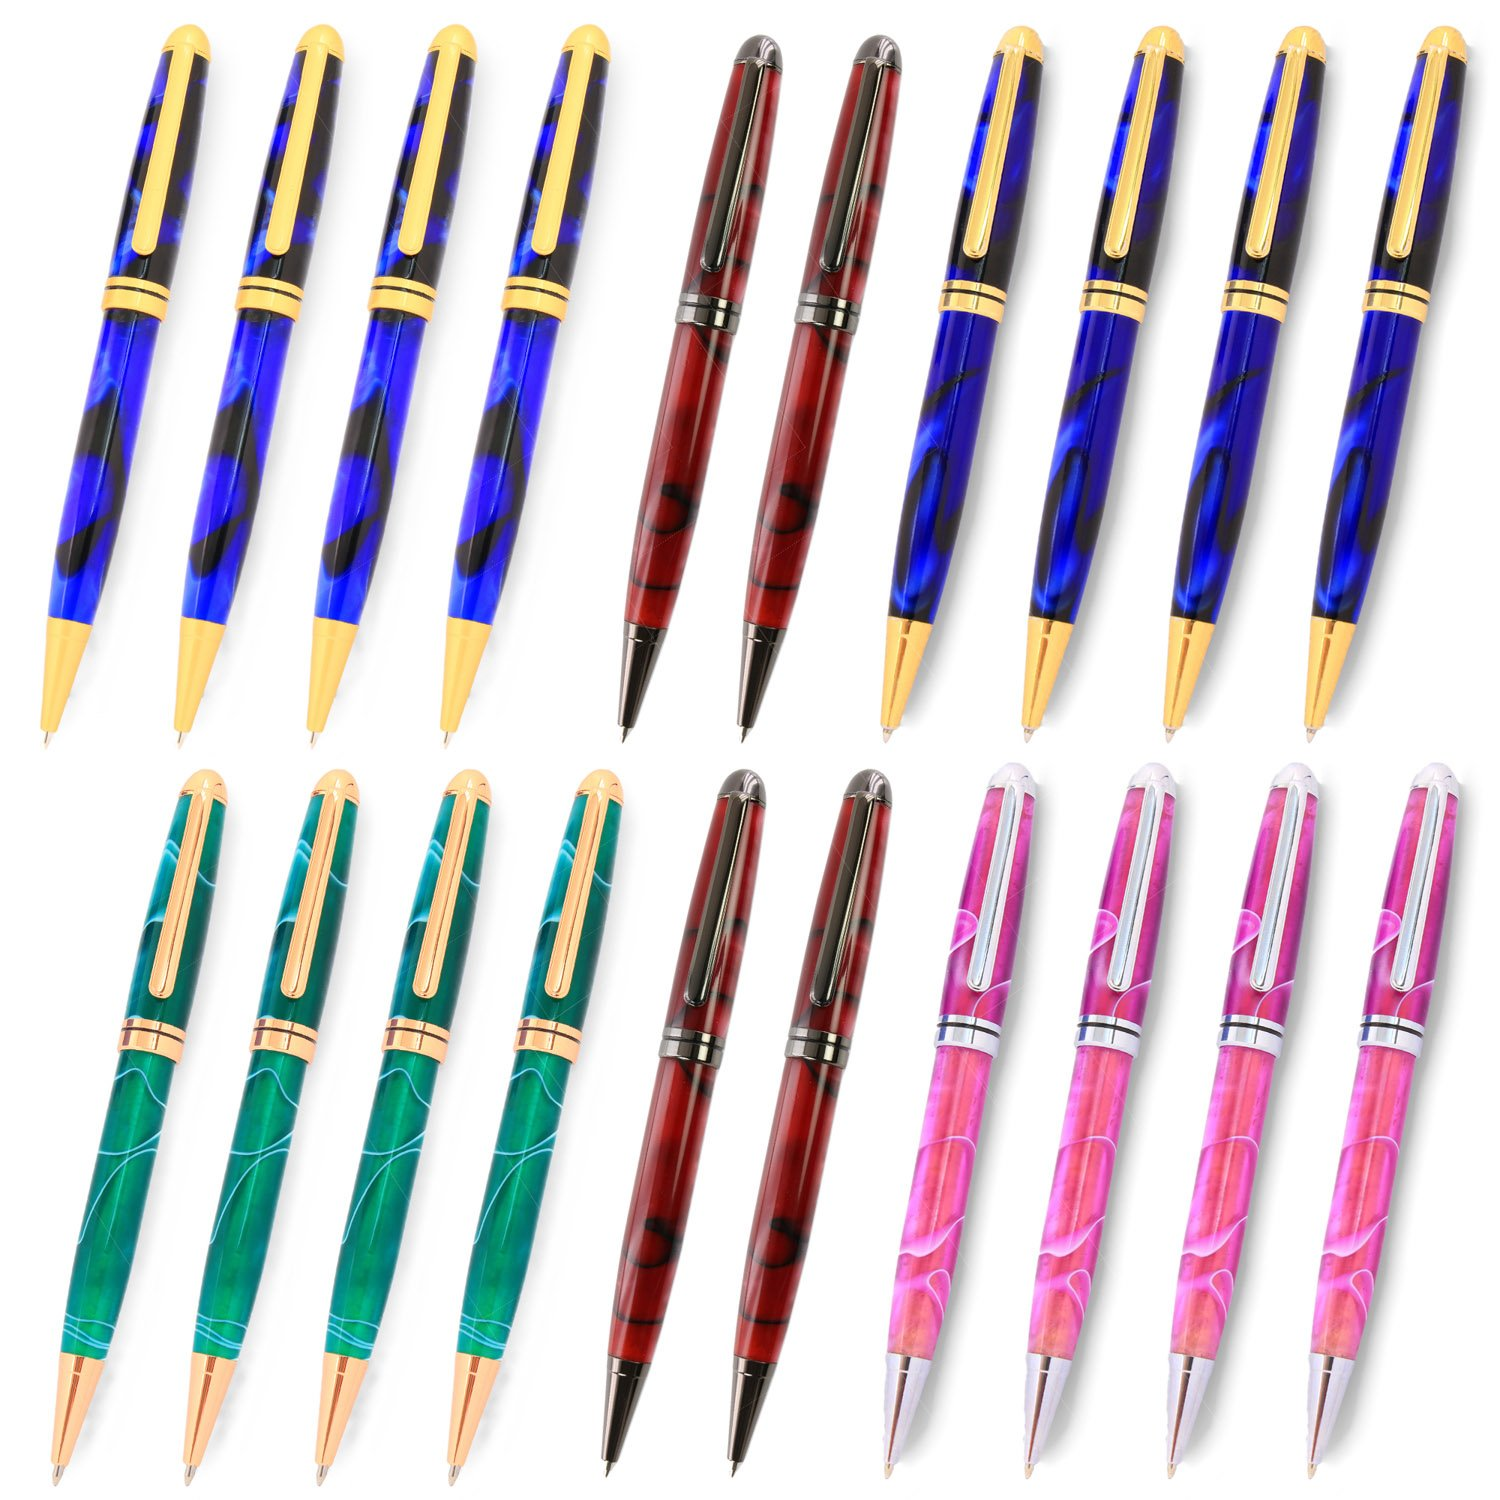 Legacy Woodturning, European Pen Kit, Many Finishes, Multi-Packs